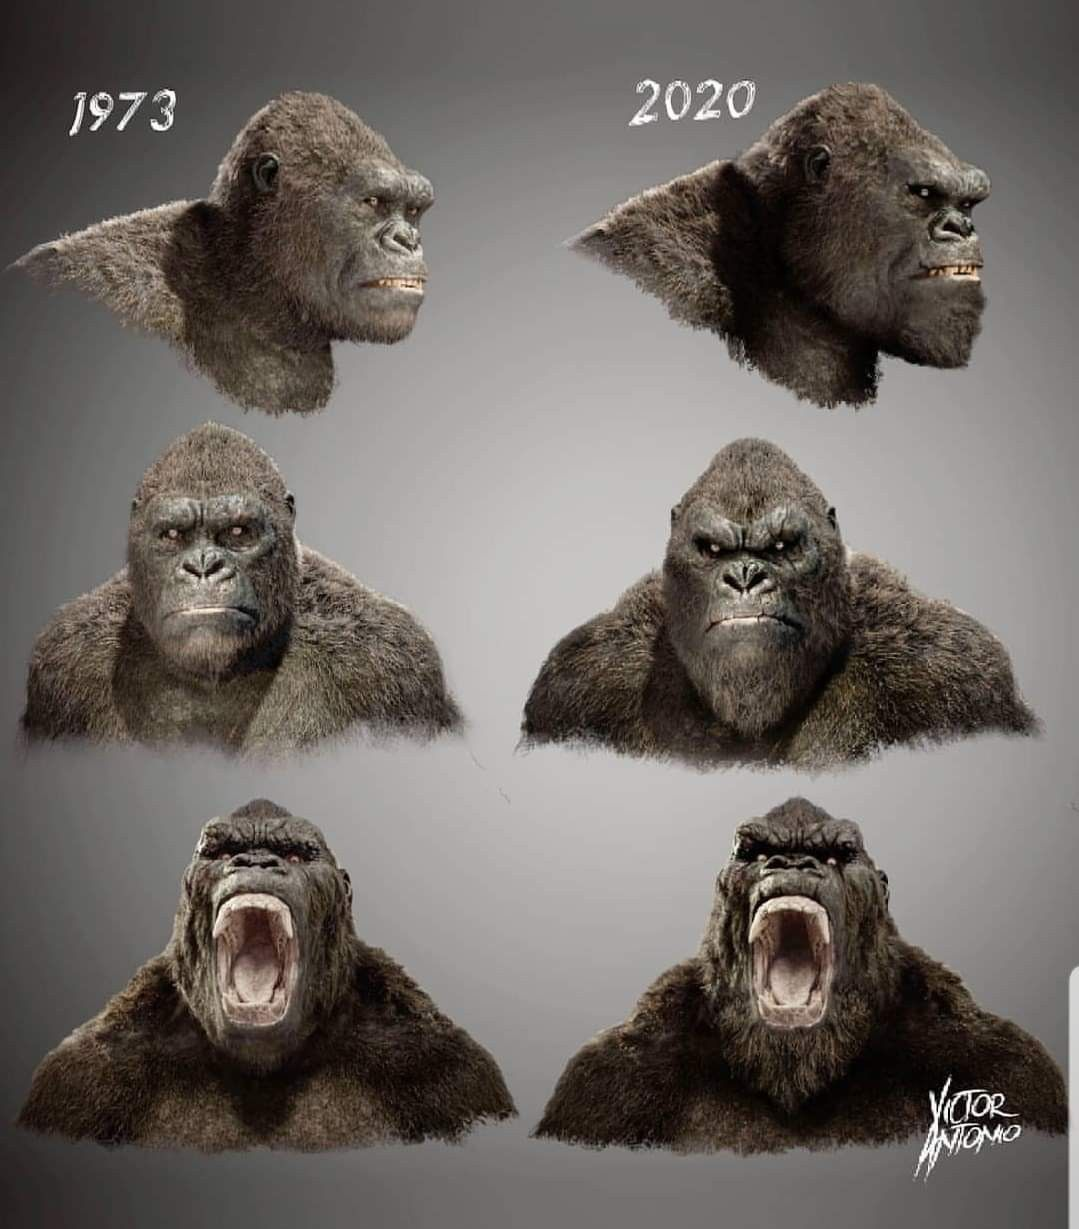 Pin by Jeffrey Girard on Godzilla in 2020 (With images